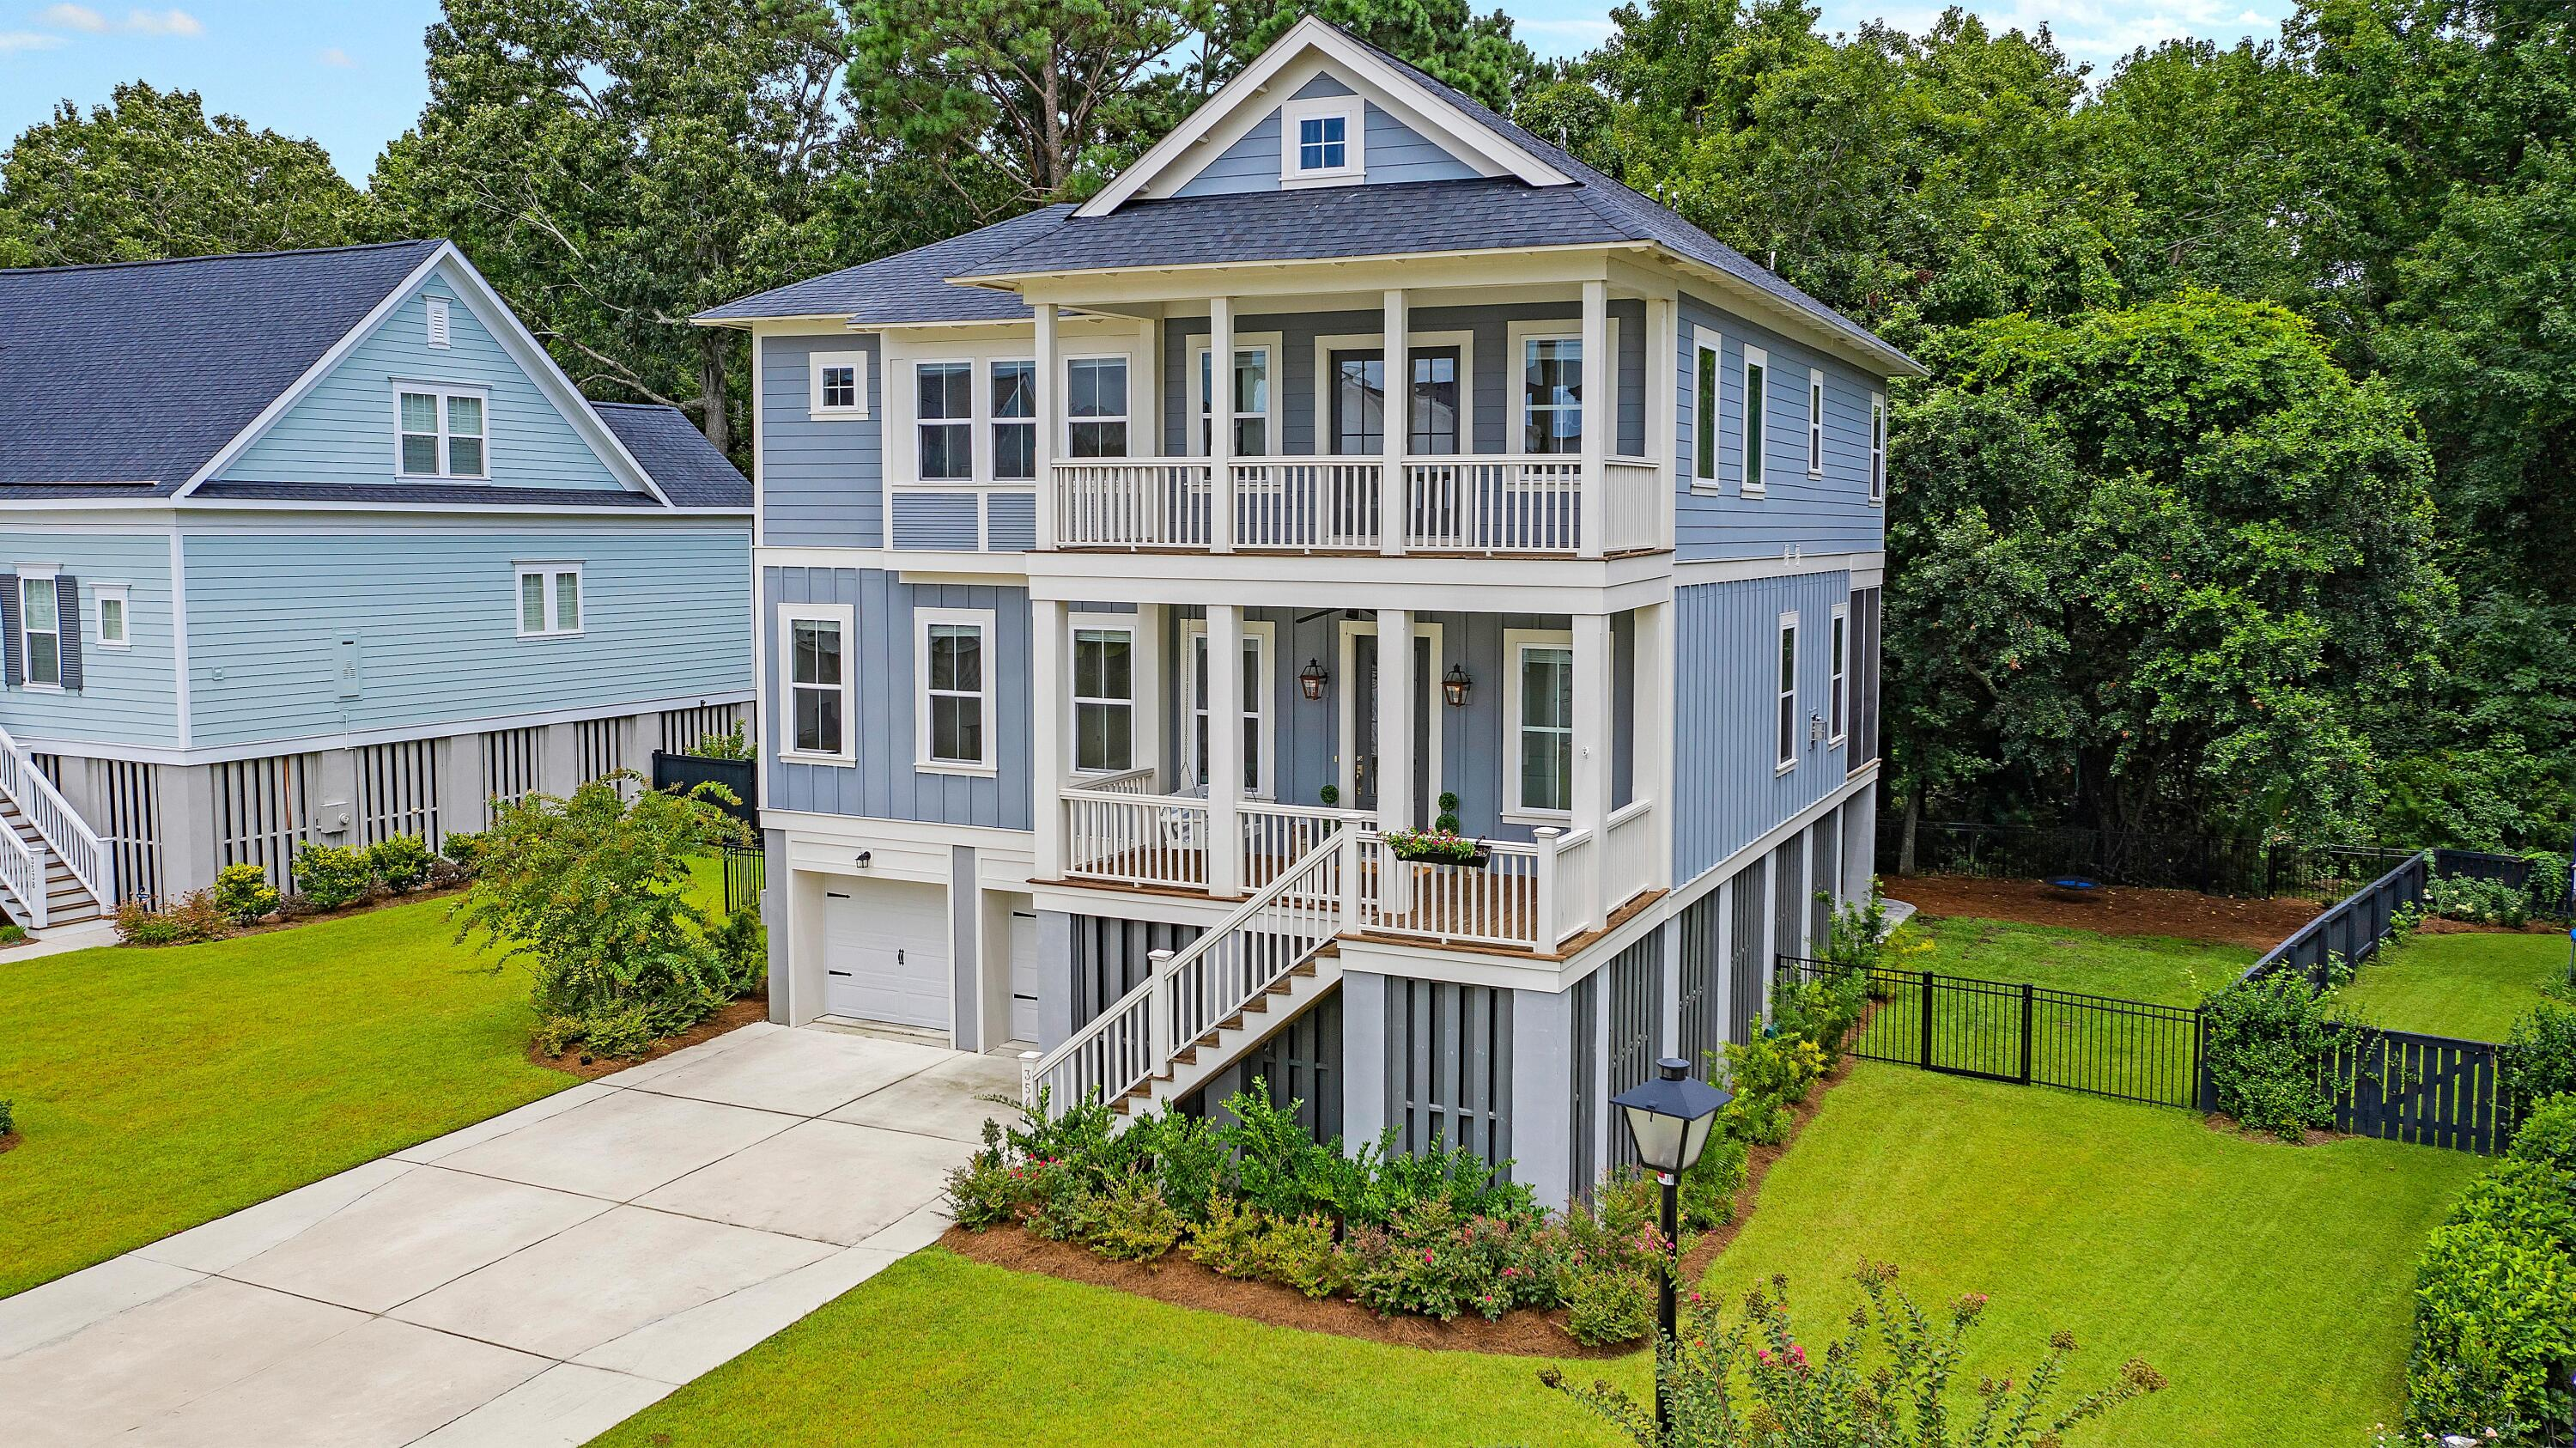 Stratton by the Sound Homes For Sale - 3542 Saltflat, Mount Pleasant, SC - 19